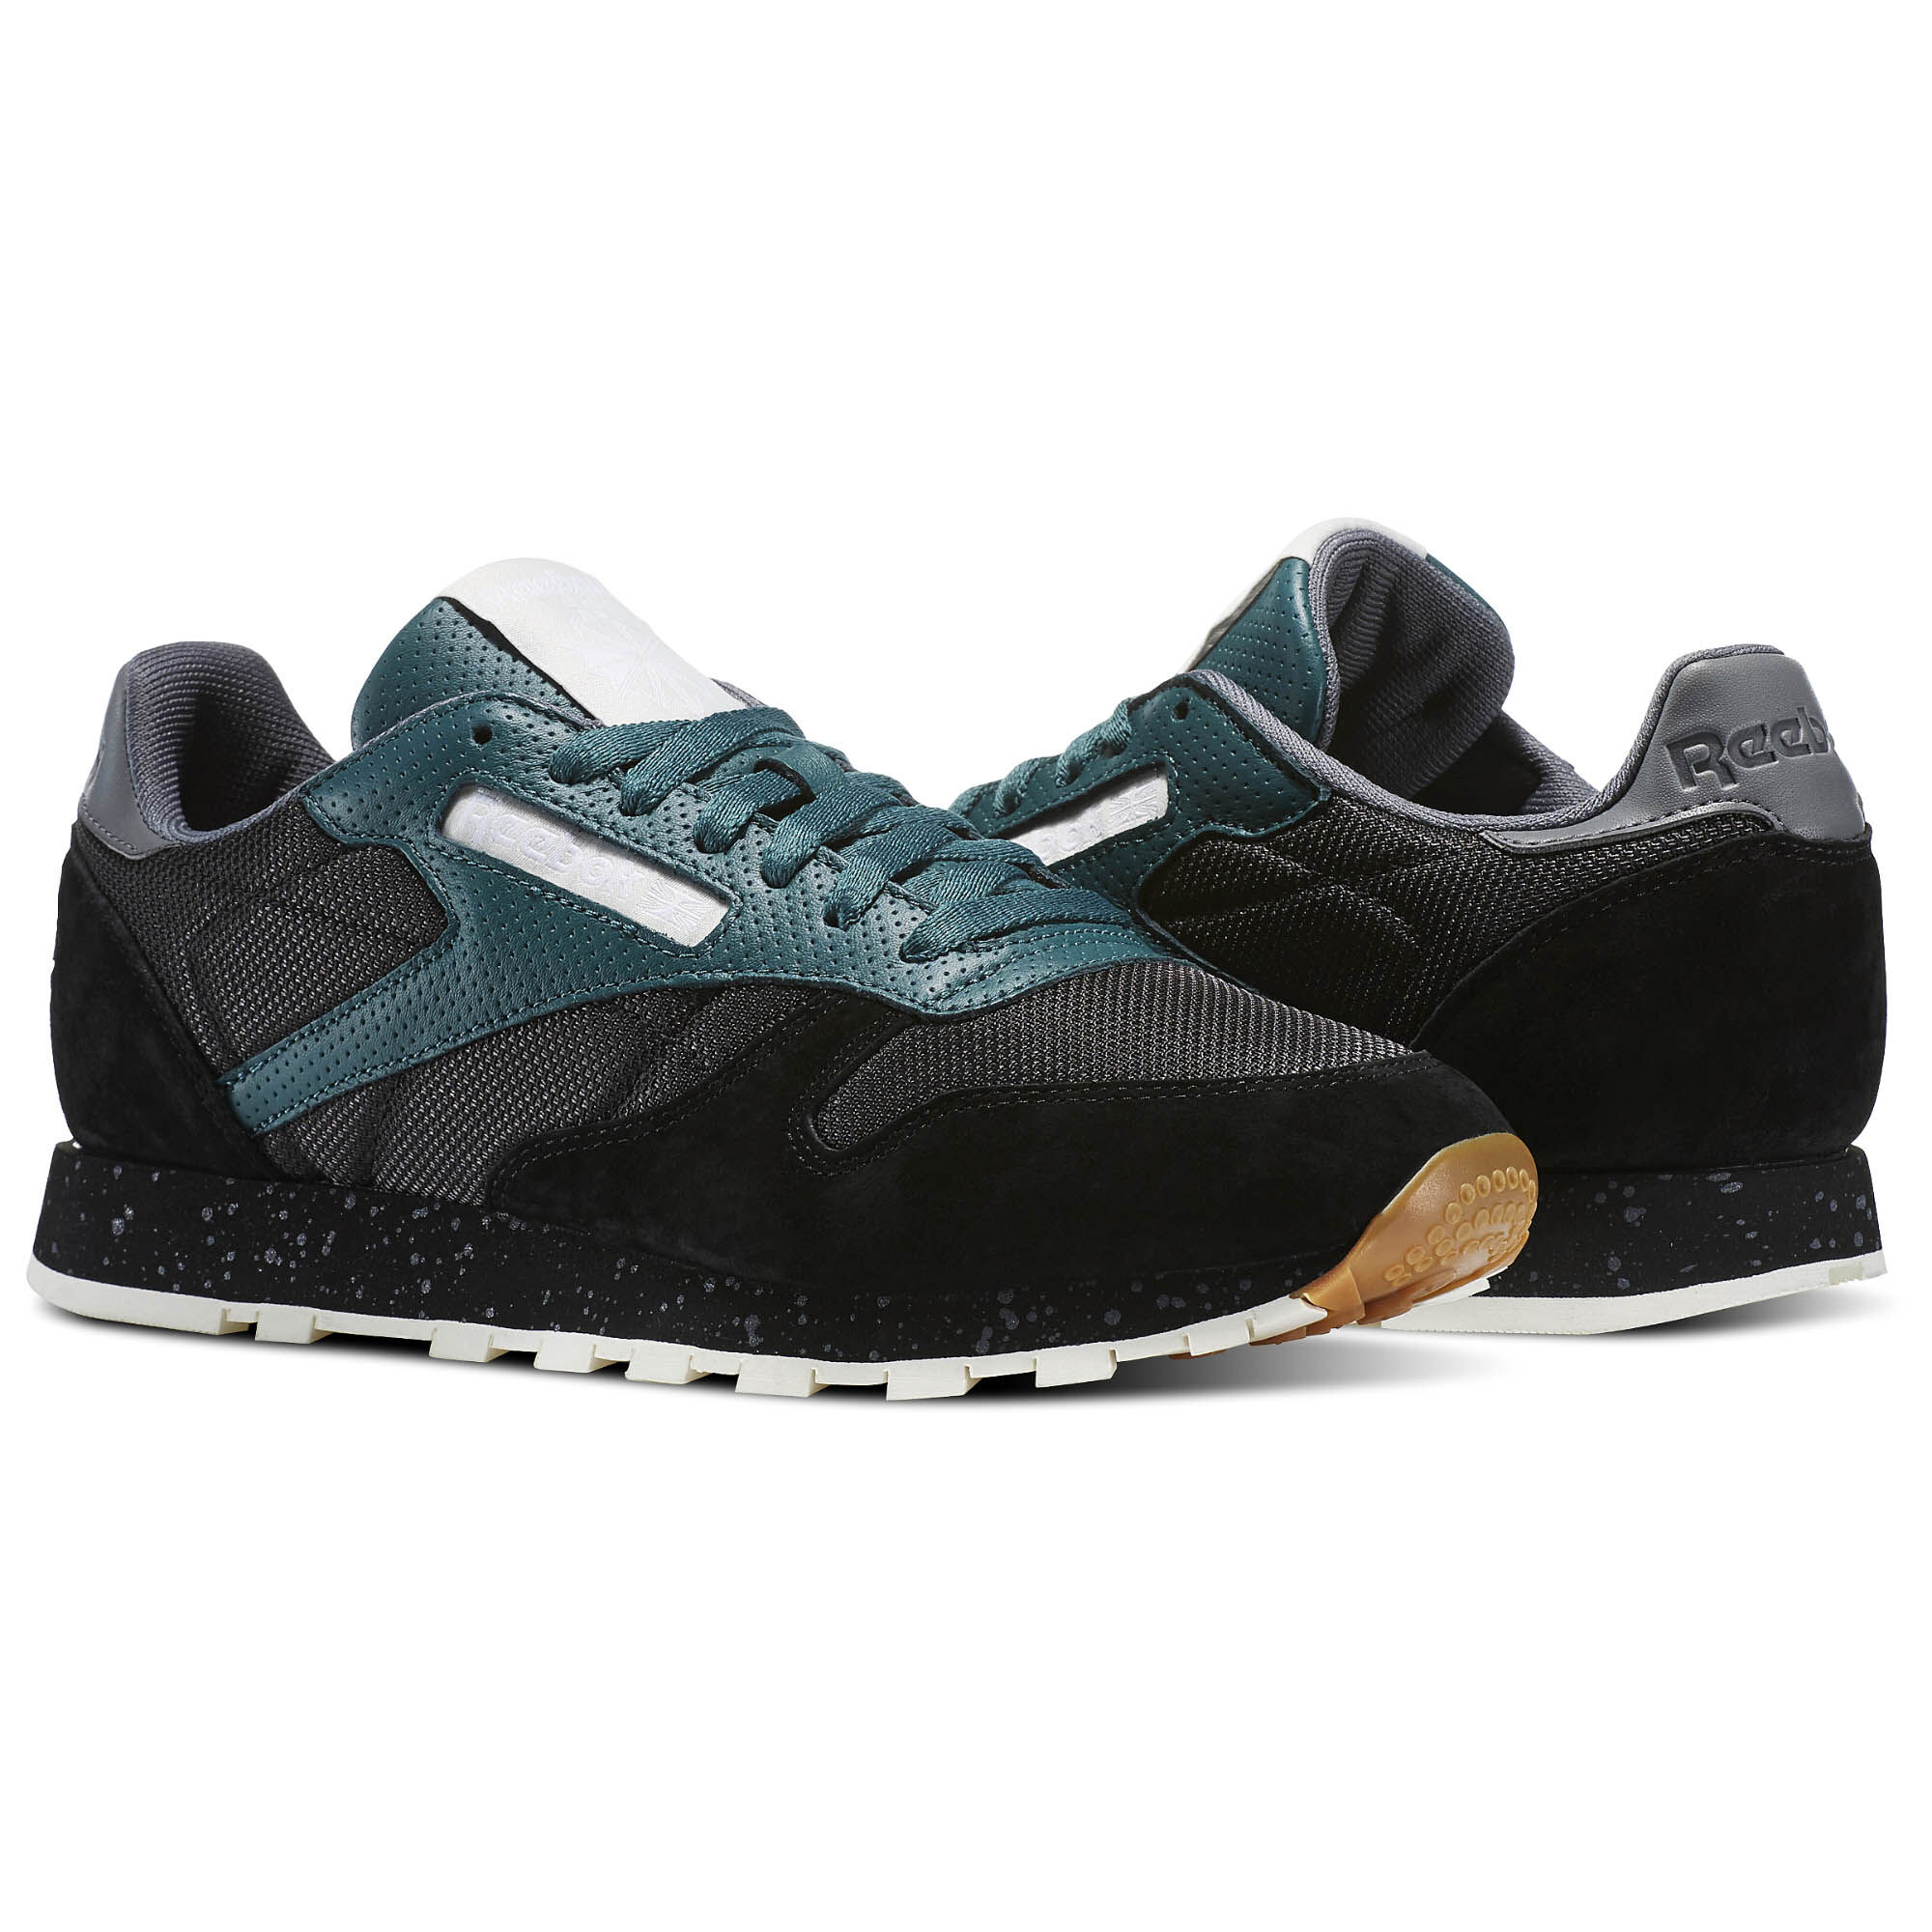 old school reebok classics cheap   OFF69% The Largest Catalog Discounts 9eae31200